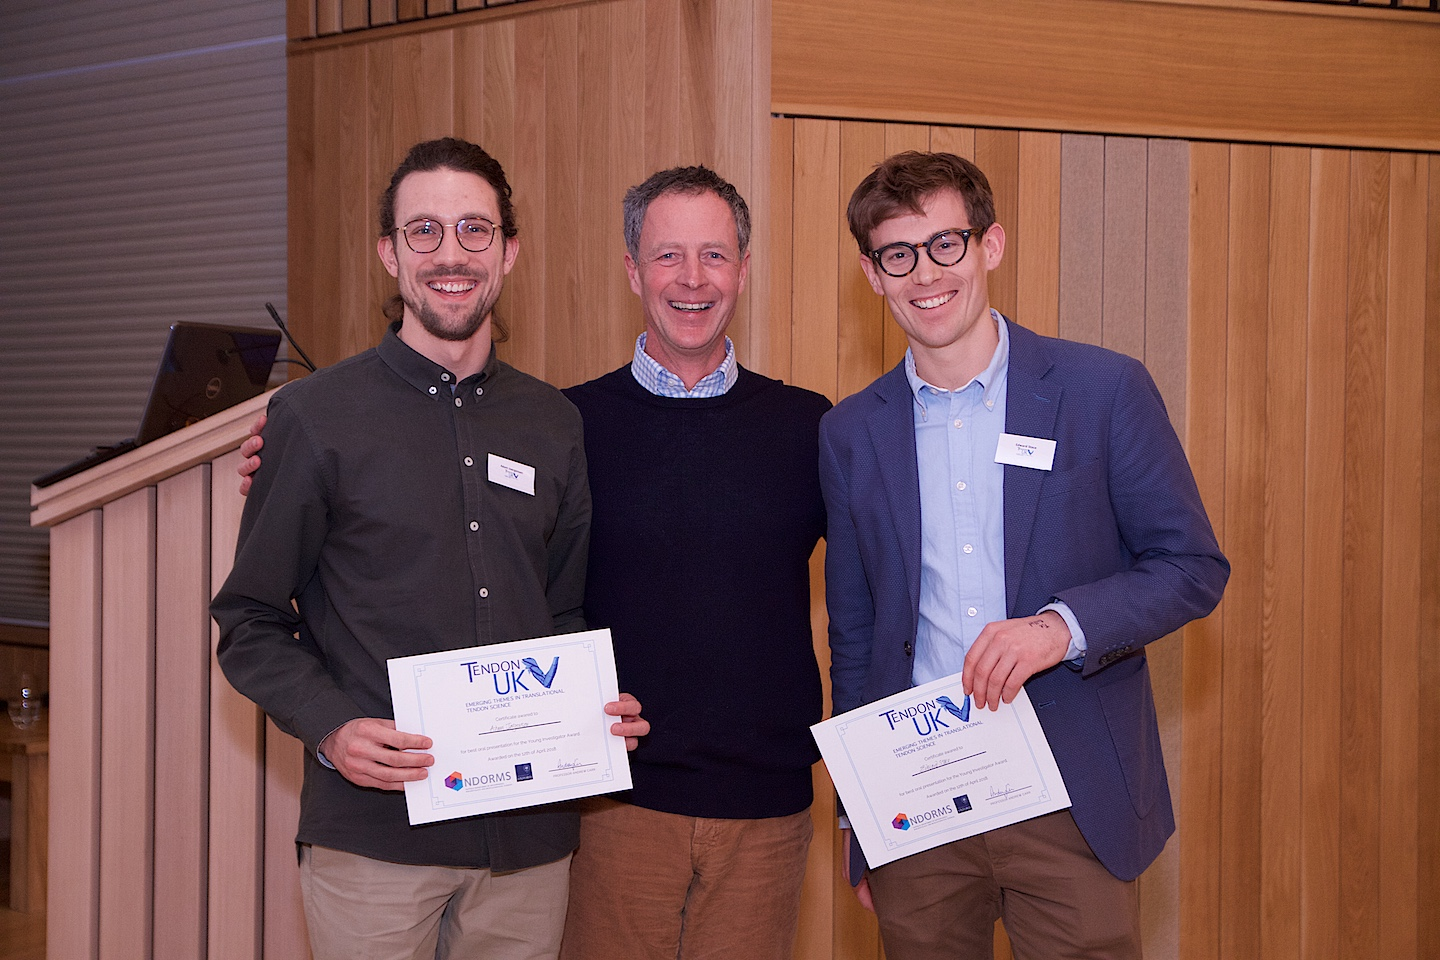 Tendon UK Conference - Young Investigator Award